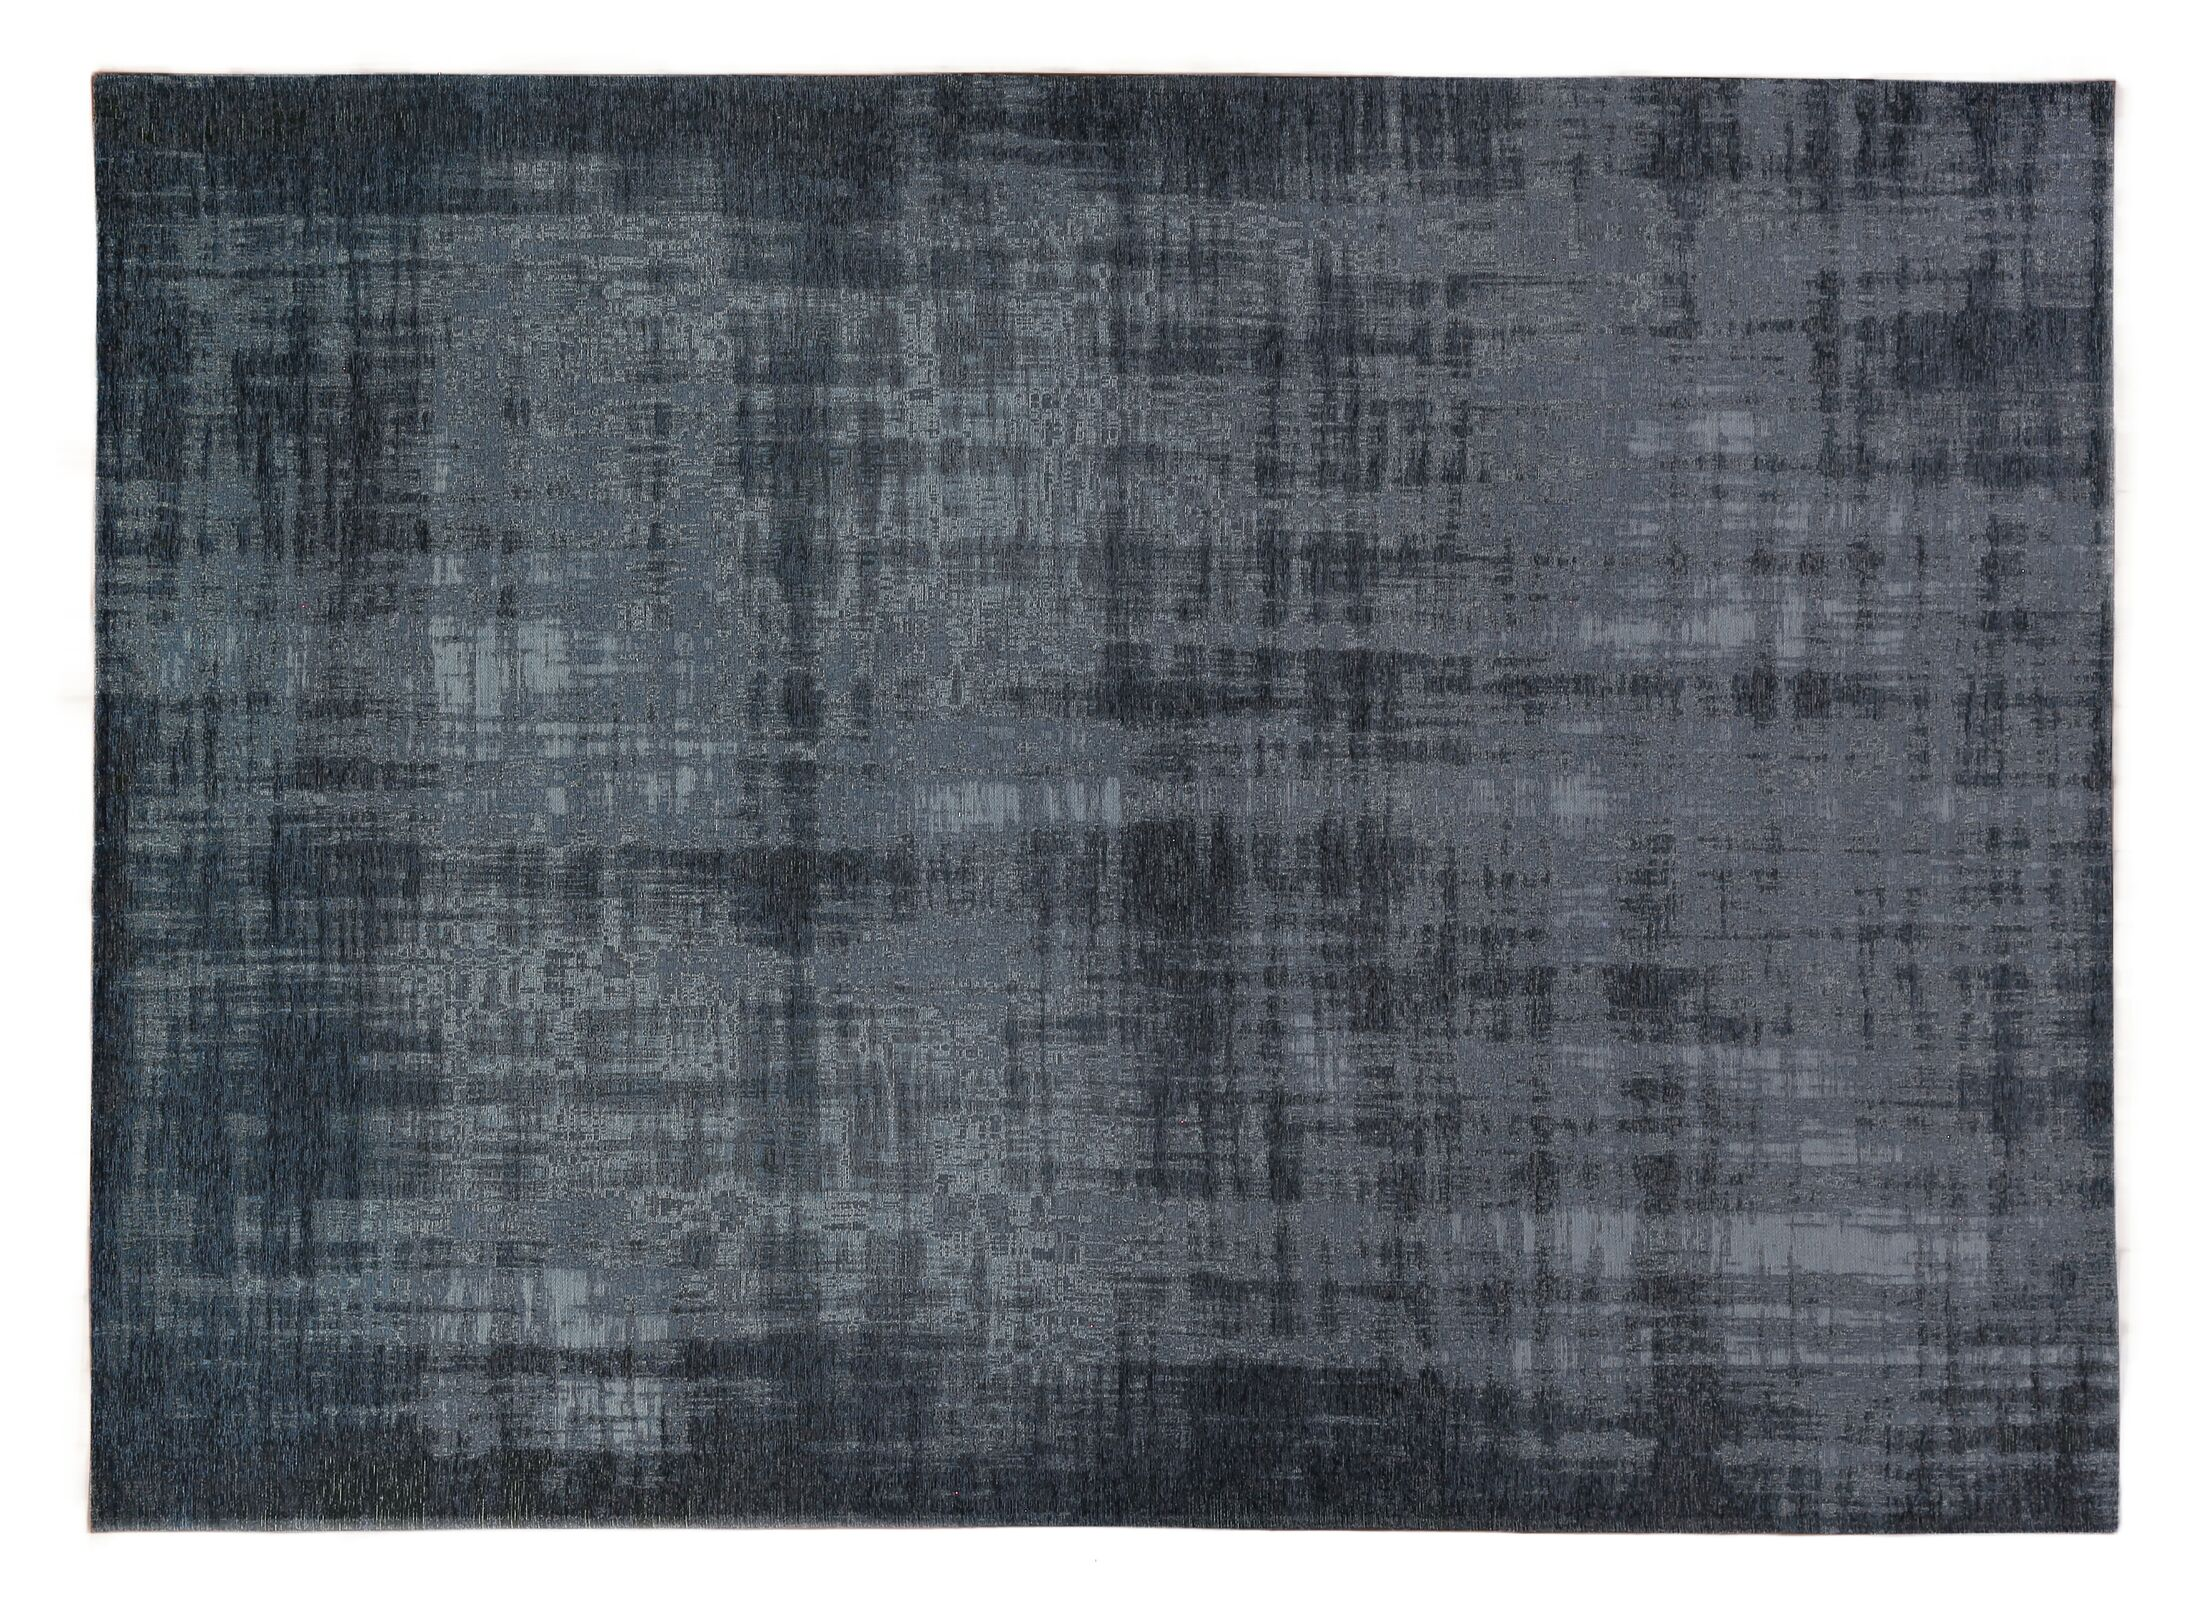 Zita Hand-Knotted Black/Gray Area Rug Rug Size: Rectangle 8' x 10'